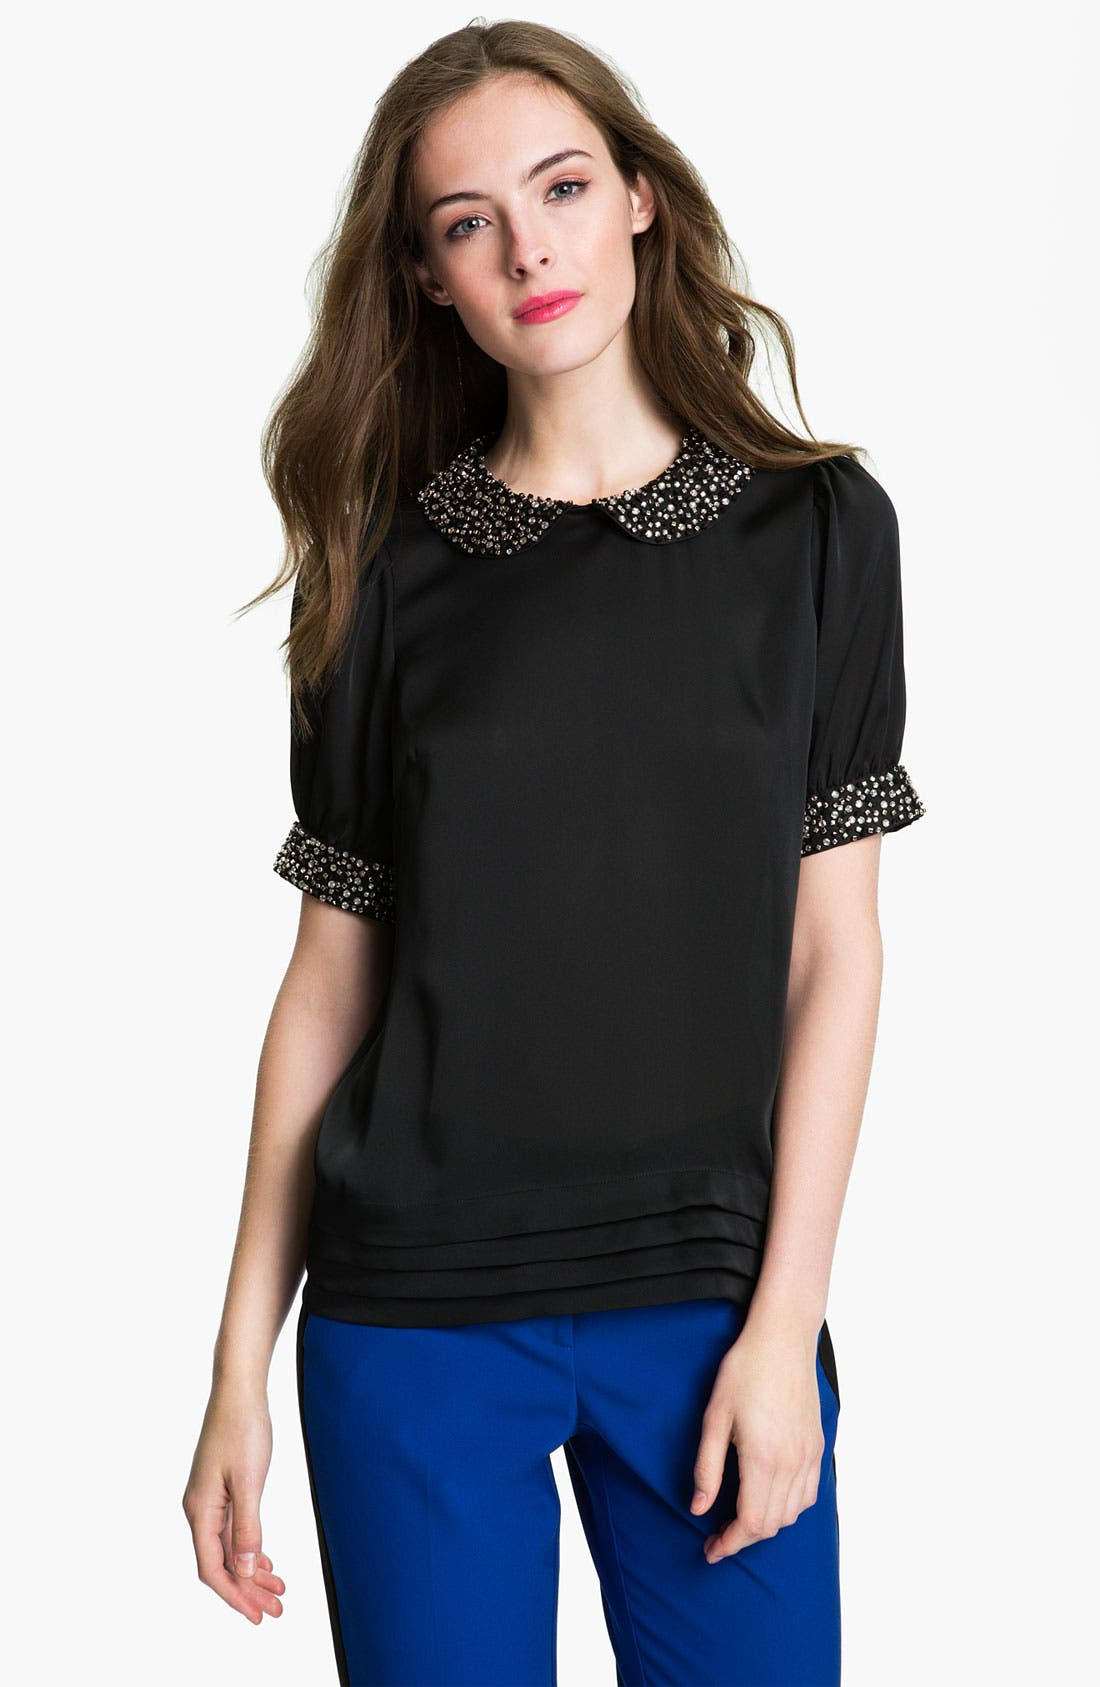 Main Image - Vince Camuto Jewel Trim Blouse with Camisole